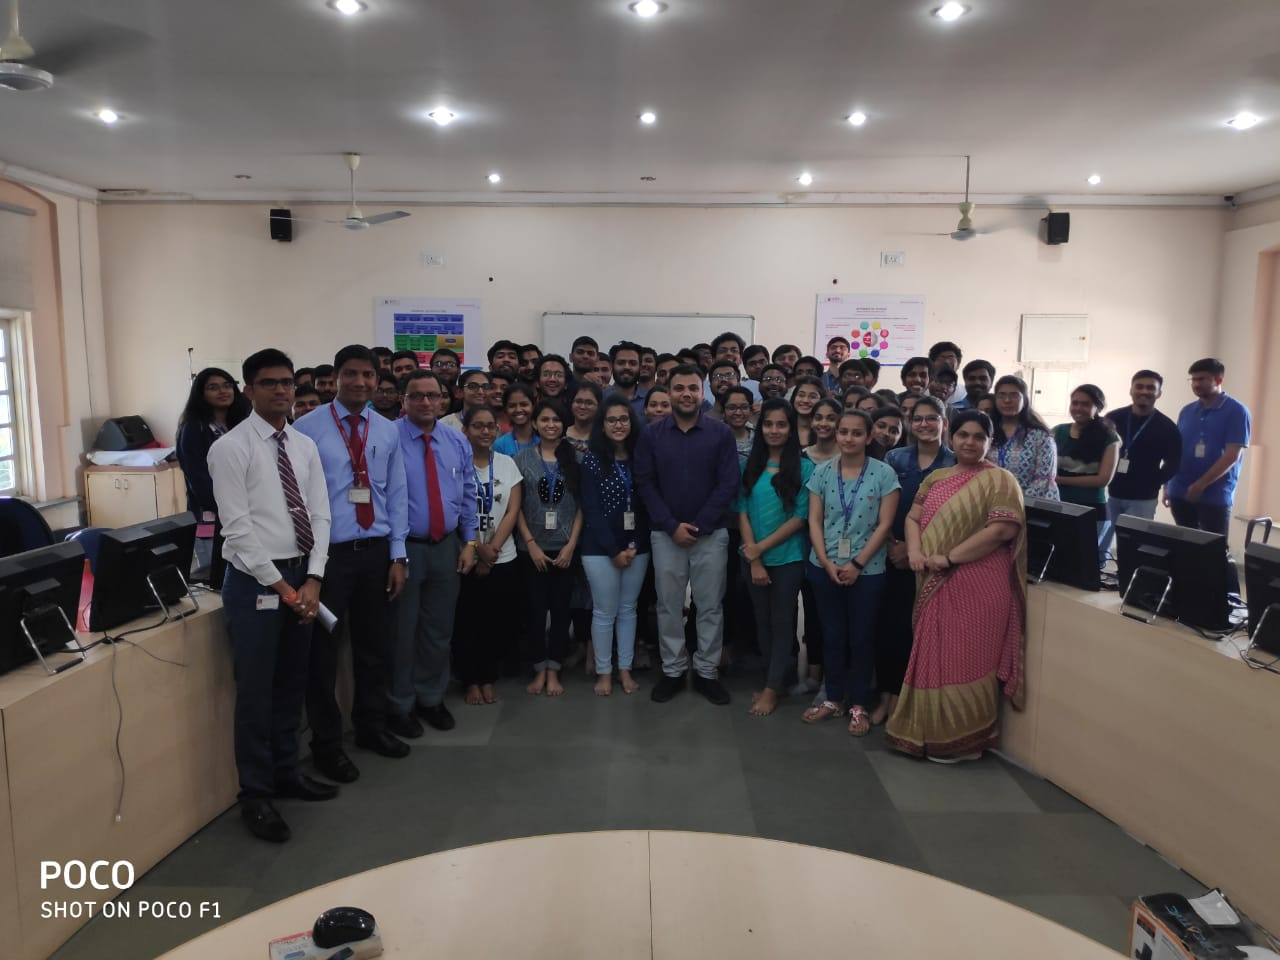 Gallery Babaria Institute of Technology, Gujarat 						Feb 15 to Feb 16, 2019